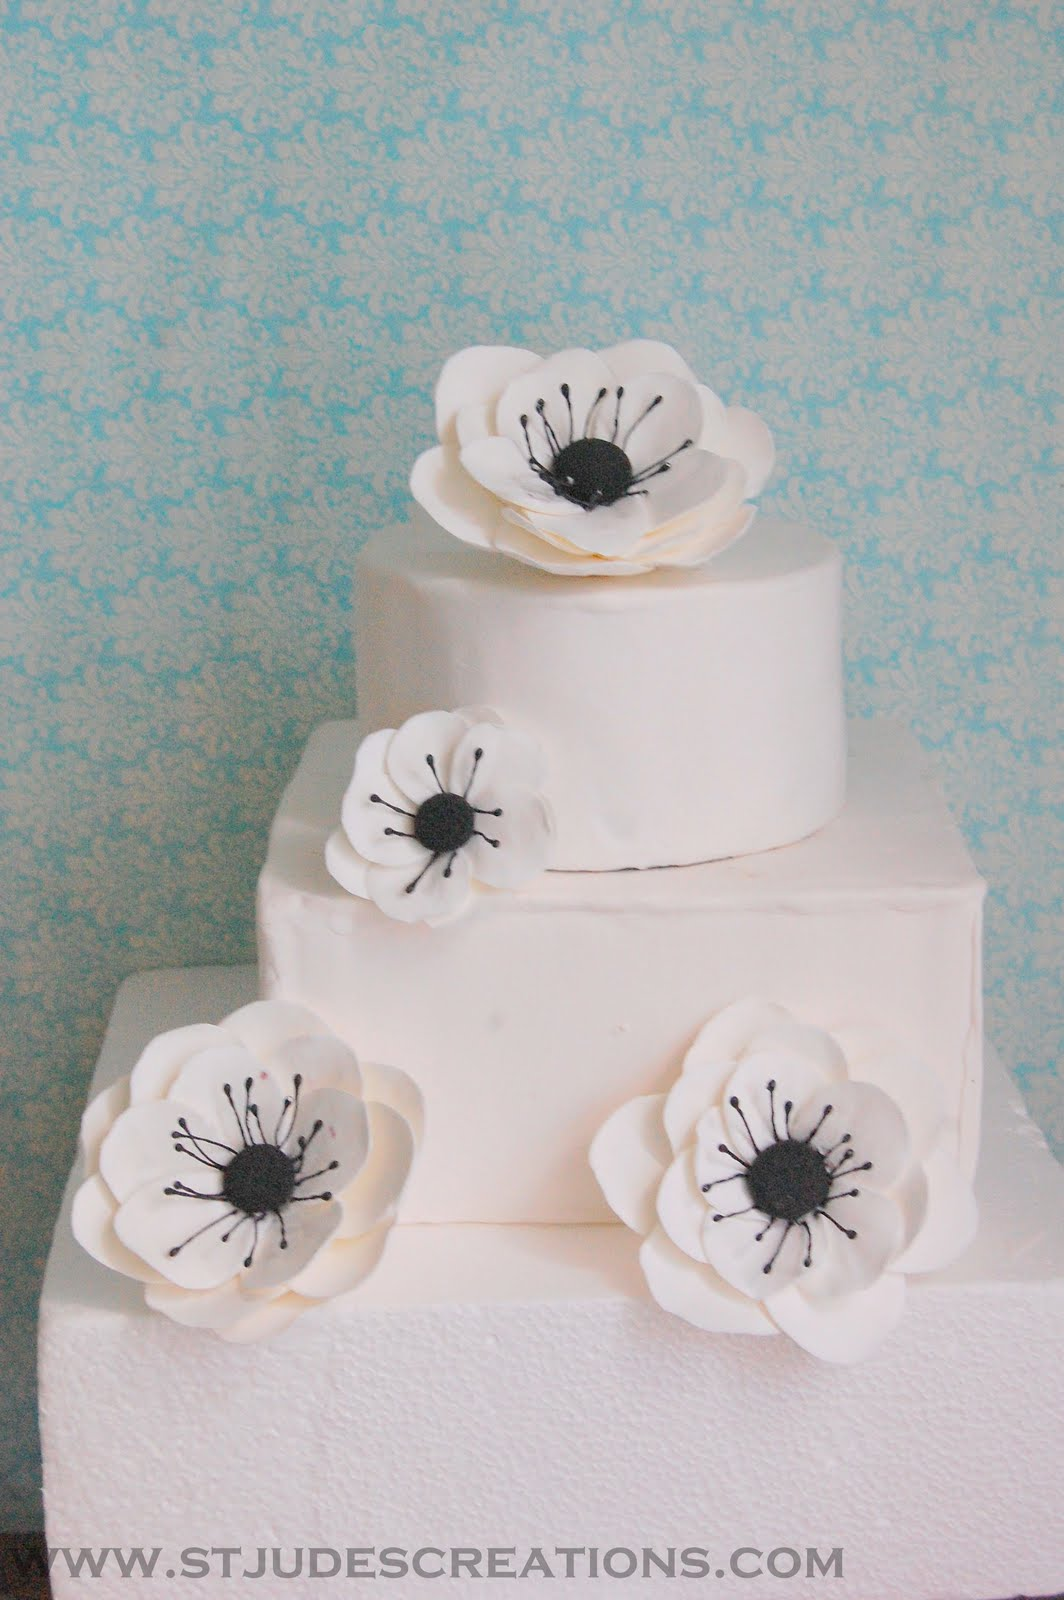 anemone cake flowers | Handmade PaPer FloweRs by Maria Noble